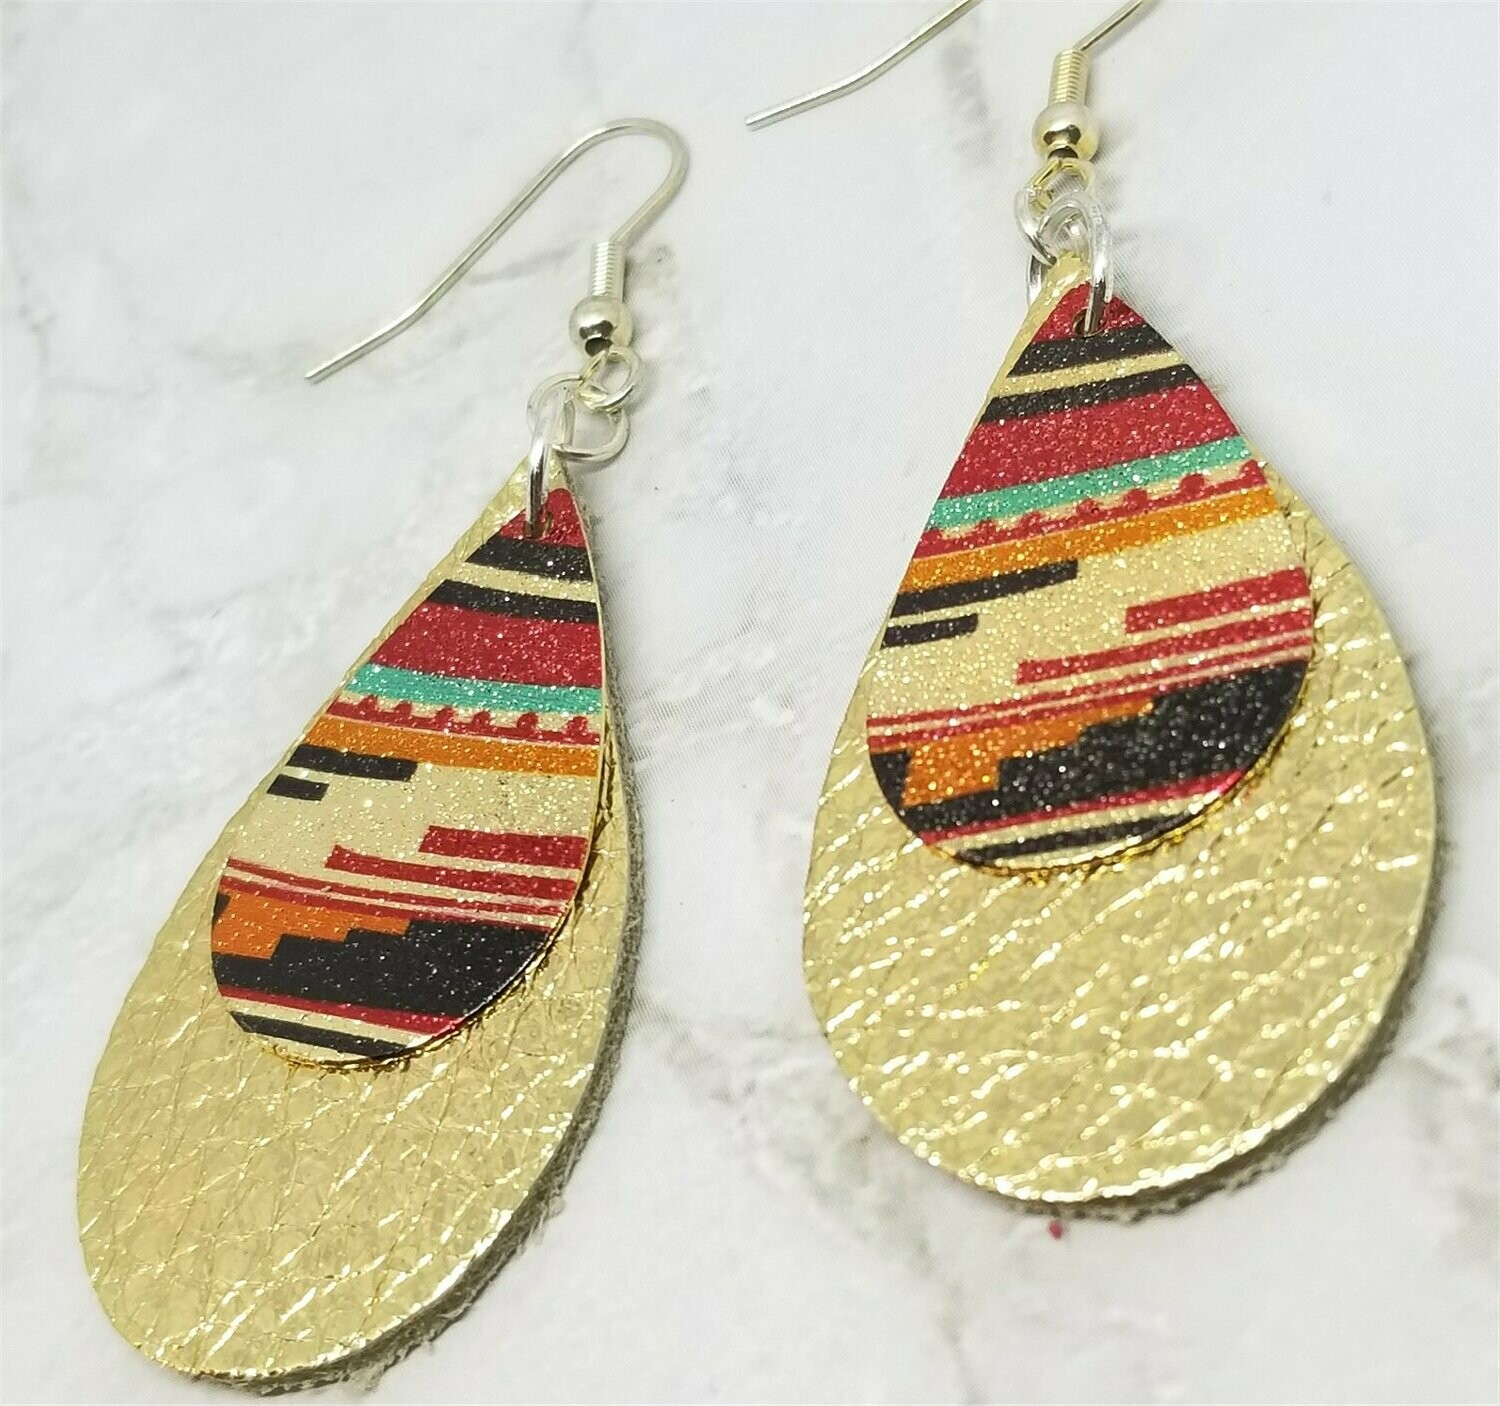 Metallic Gold Tear Drop Shaped Real Leather Earrings with Southwestern Themed Charm Overlay